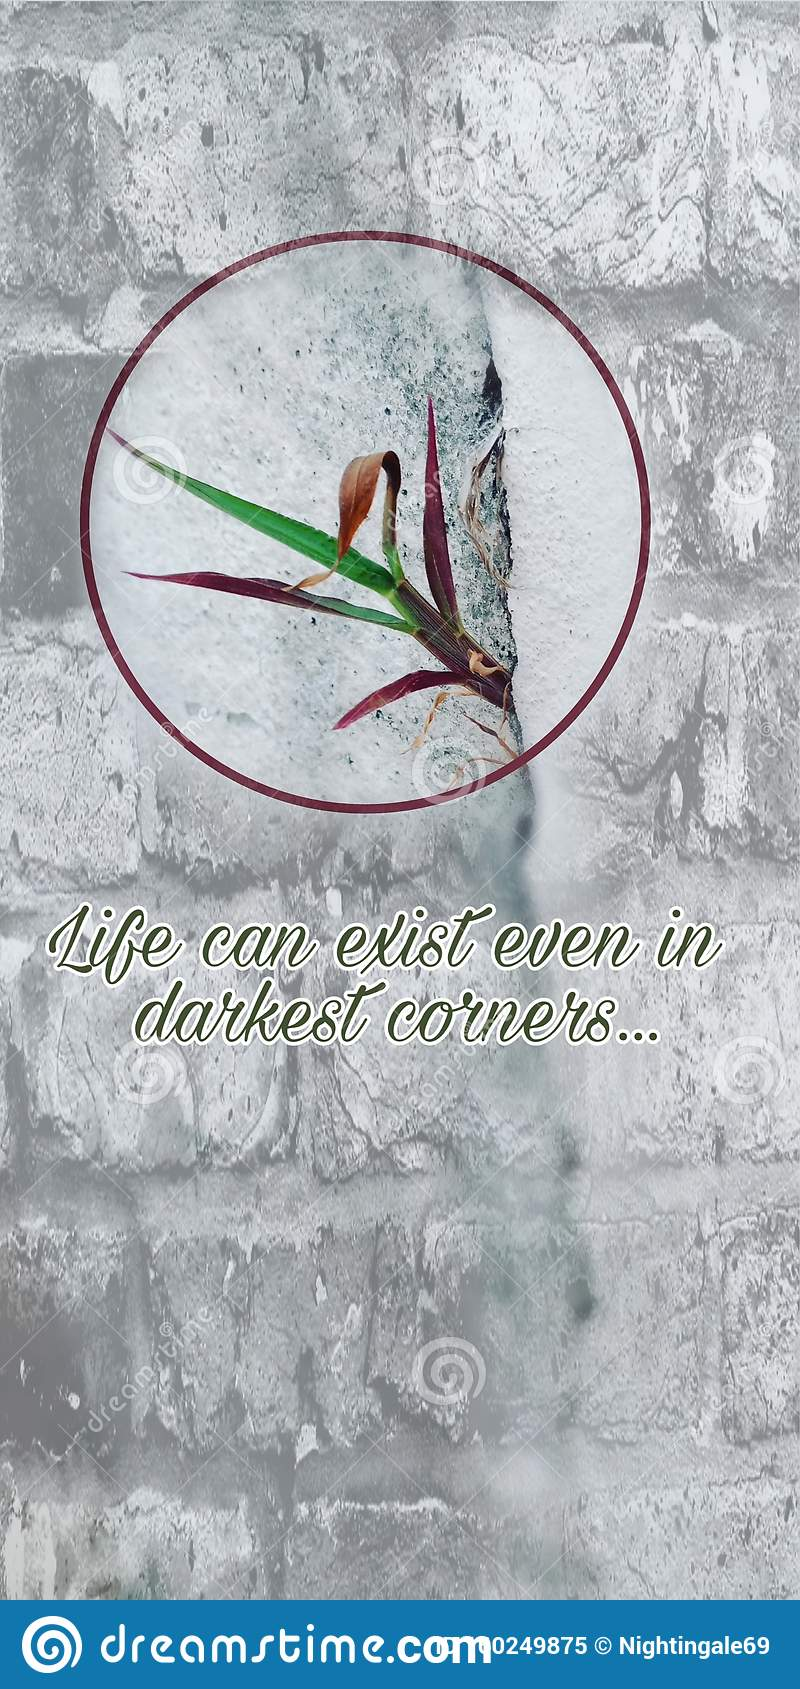 Plant Leaves Growing Out From Cracks In Brick Wall Background With Quote Stock Image Image Of Gray Hope 160249875